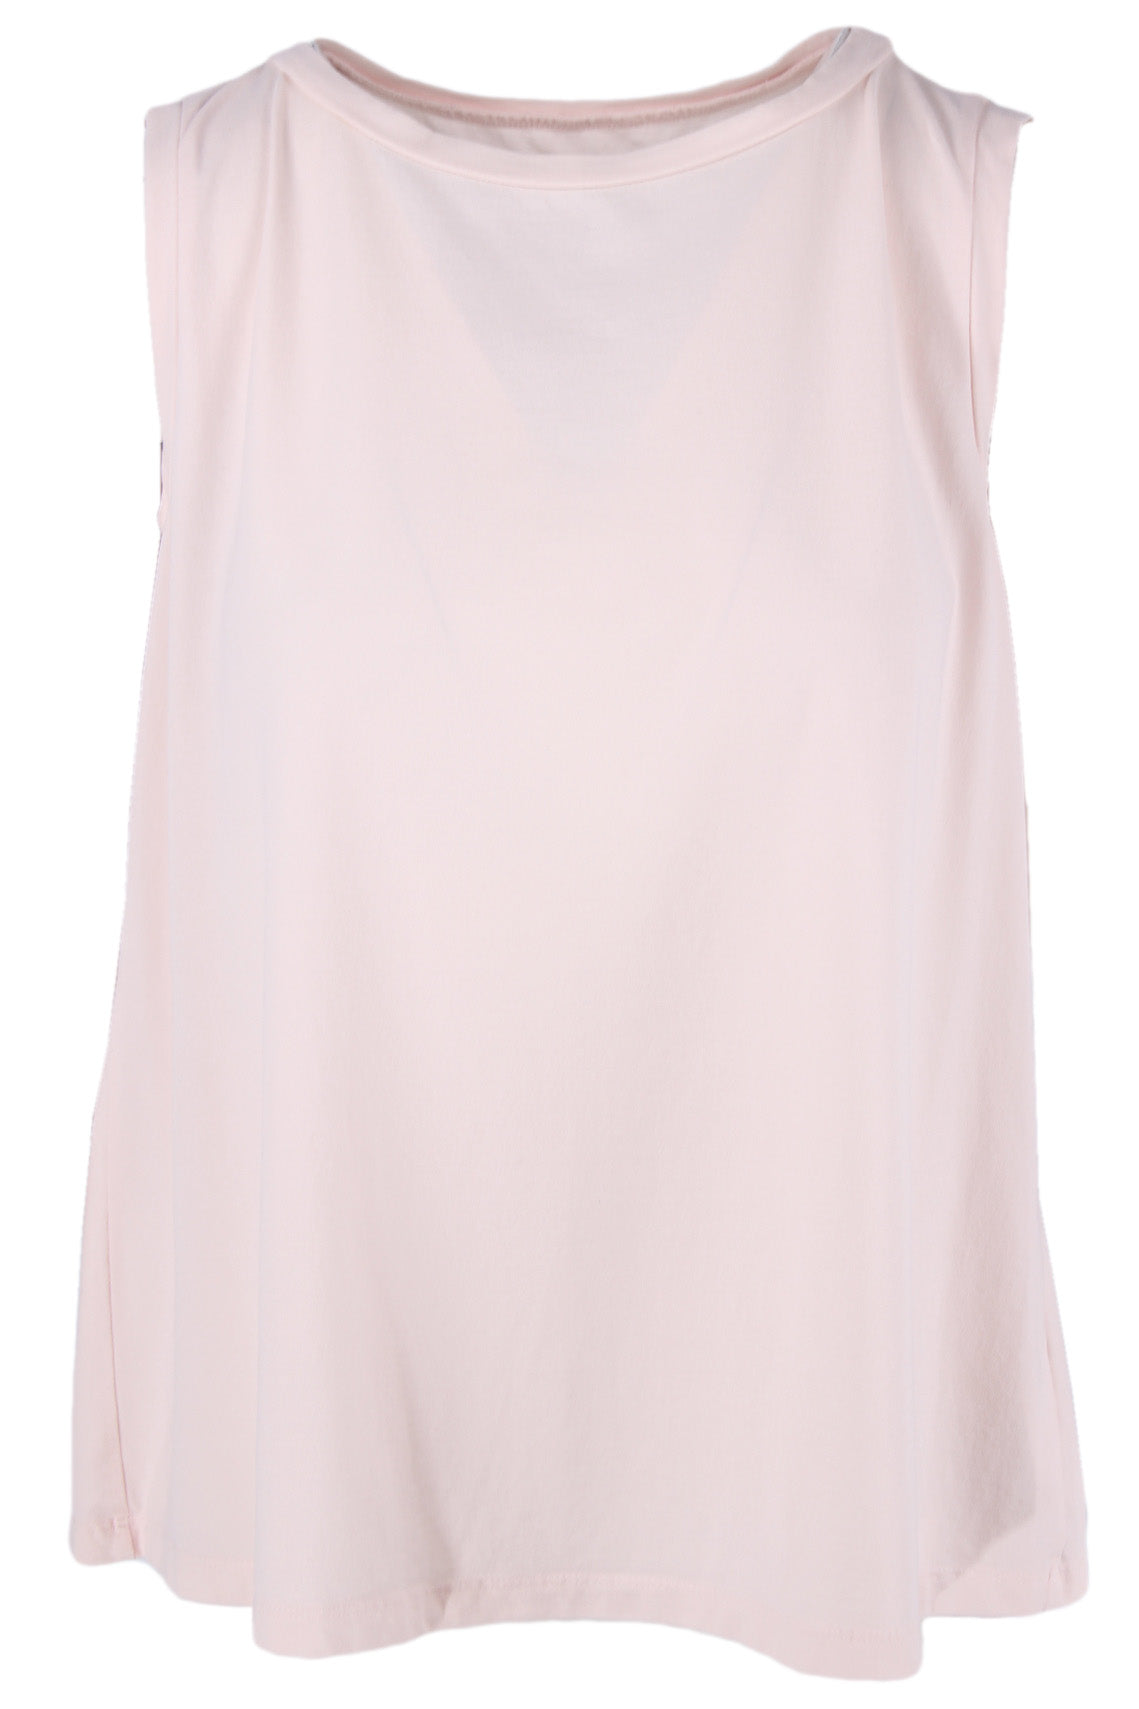 labo art pale pink tank top. features a round neckline & relaxed cut.